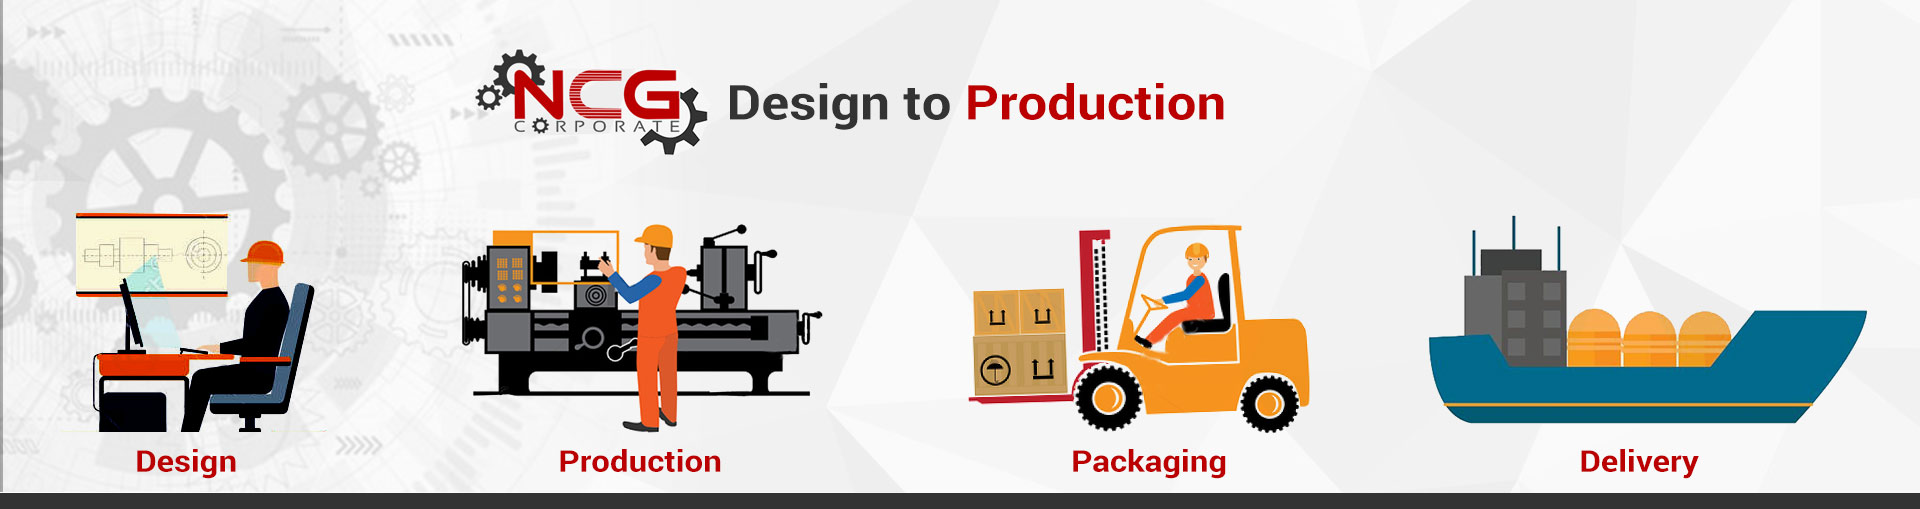 Design to Production